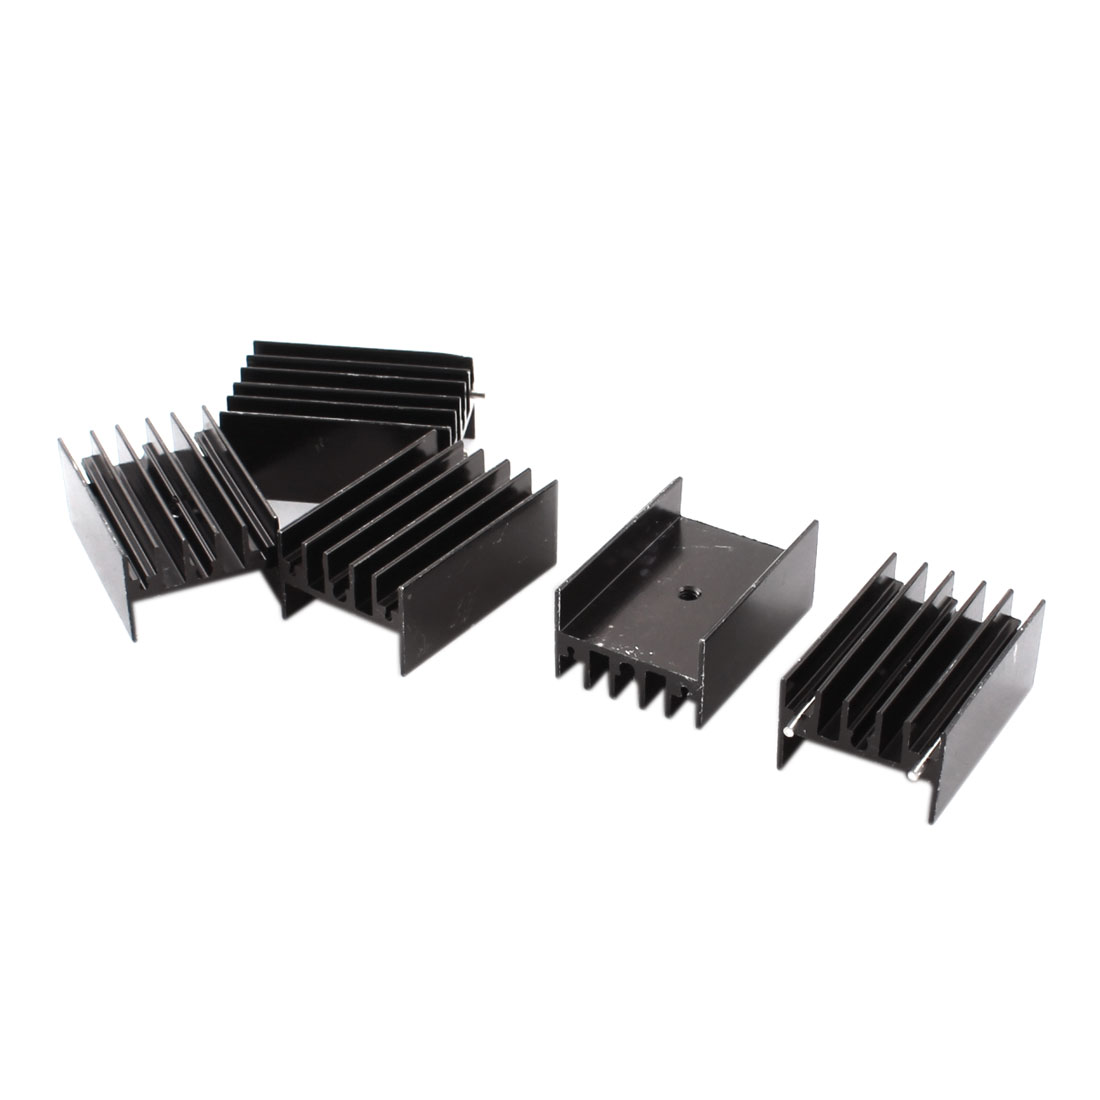 5pcs 23mm x 16mm x 35mm Black Aluminium Radiator Fin Cooling Cooler Heatsink Heat Sink w Needle for PCB Board